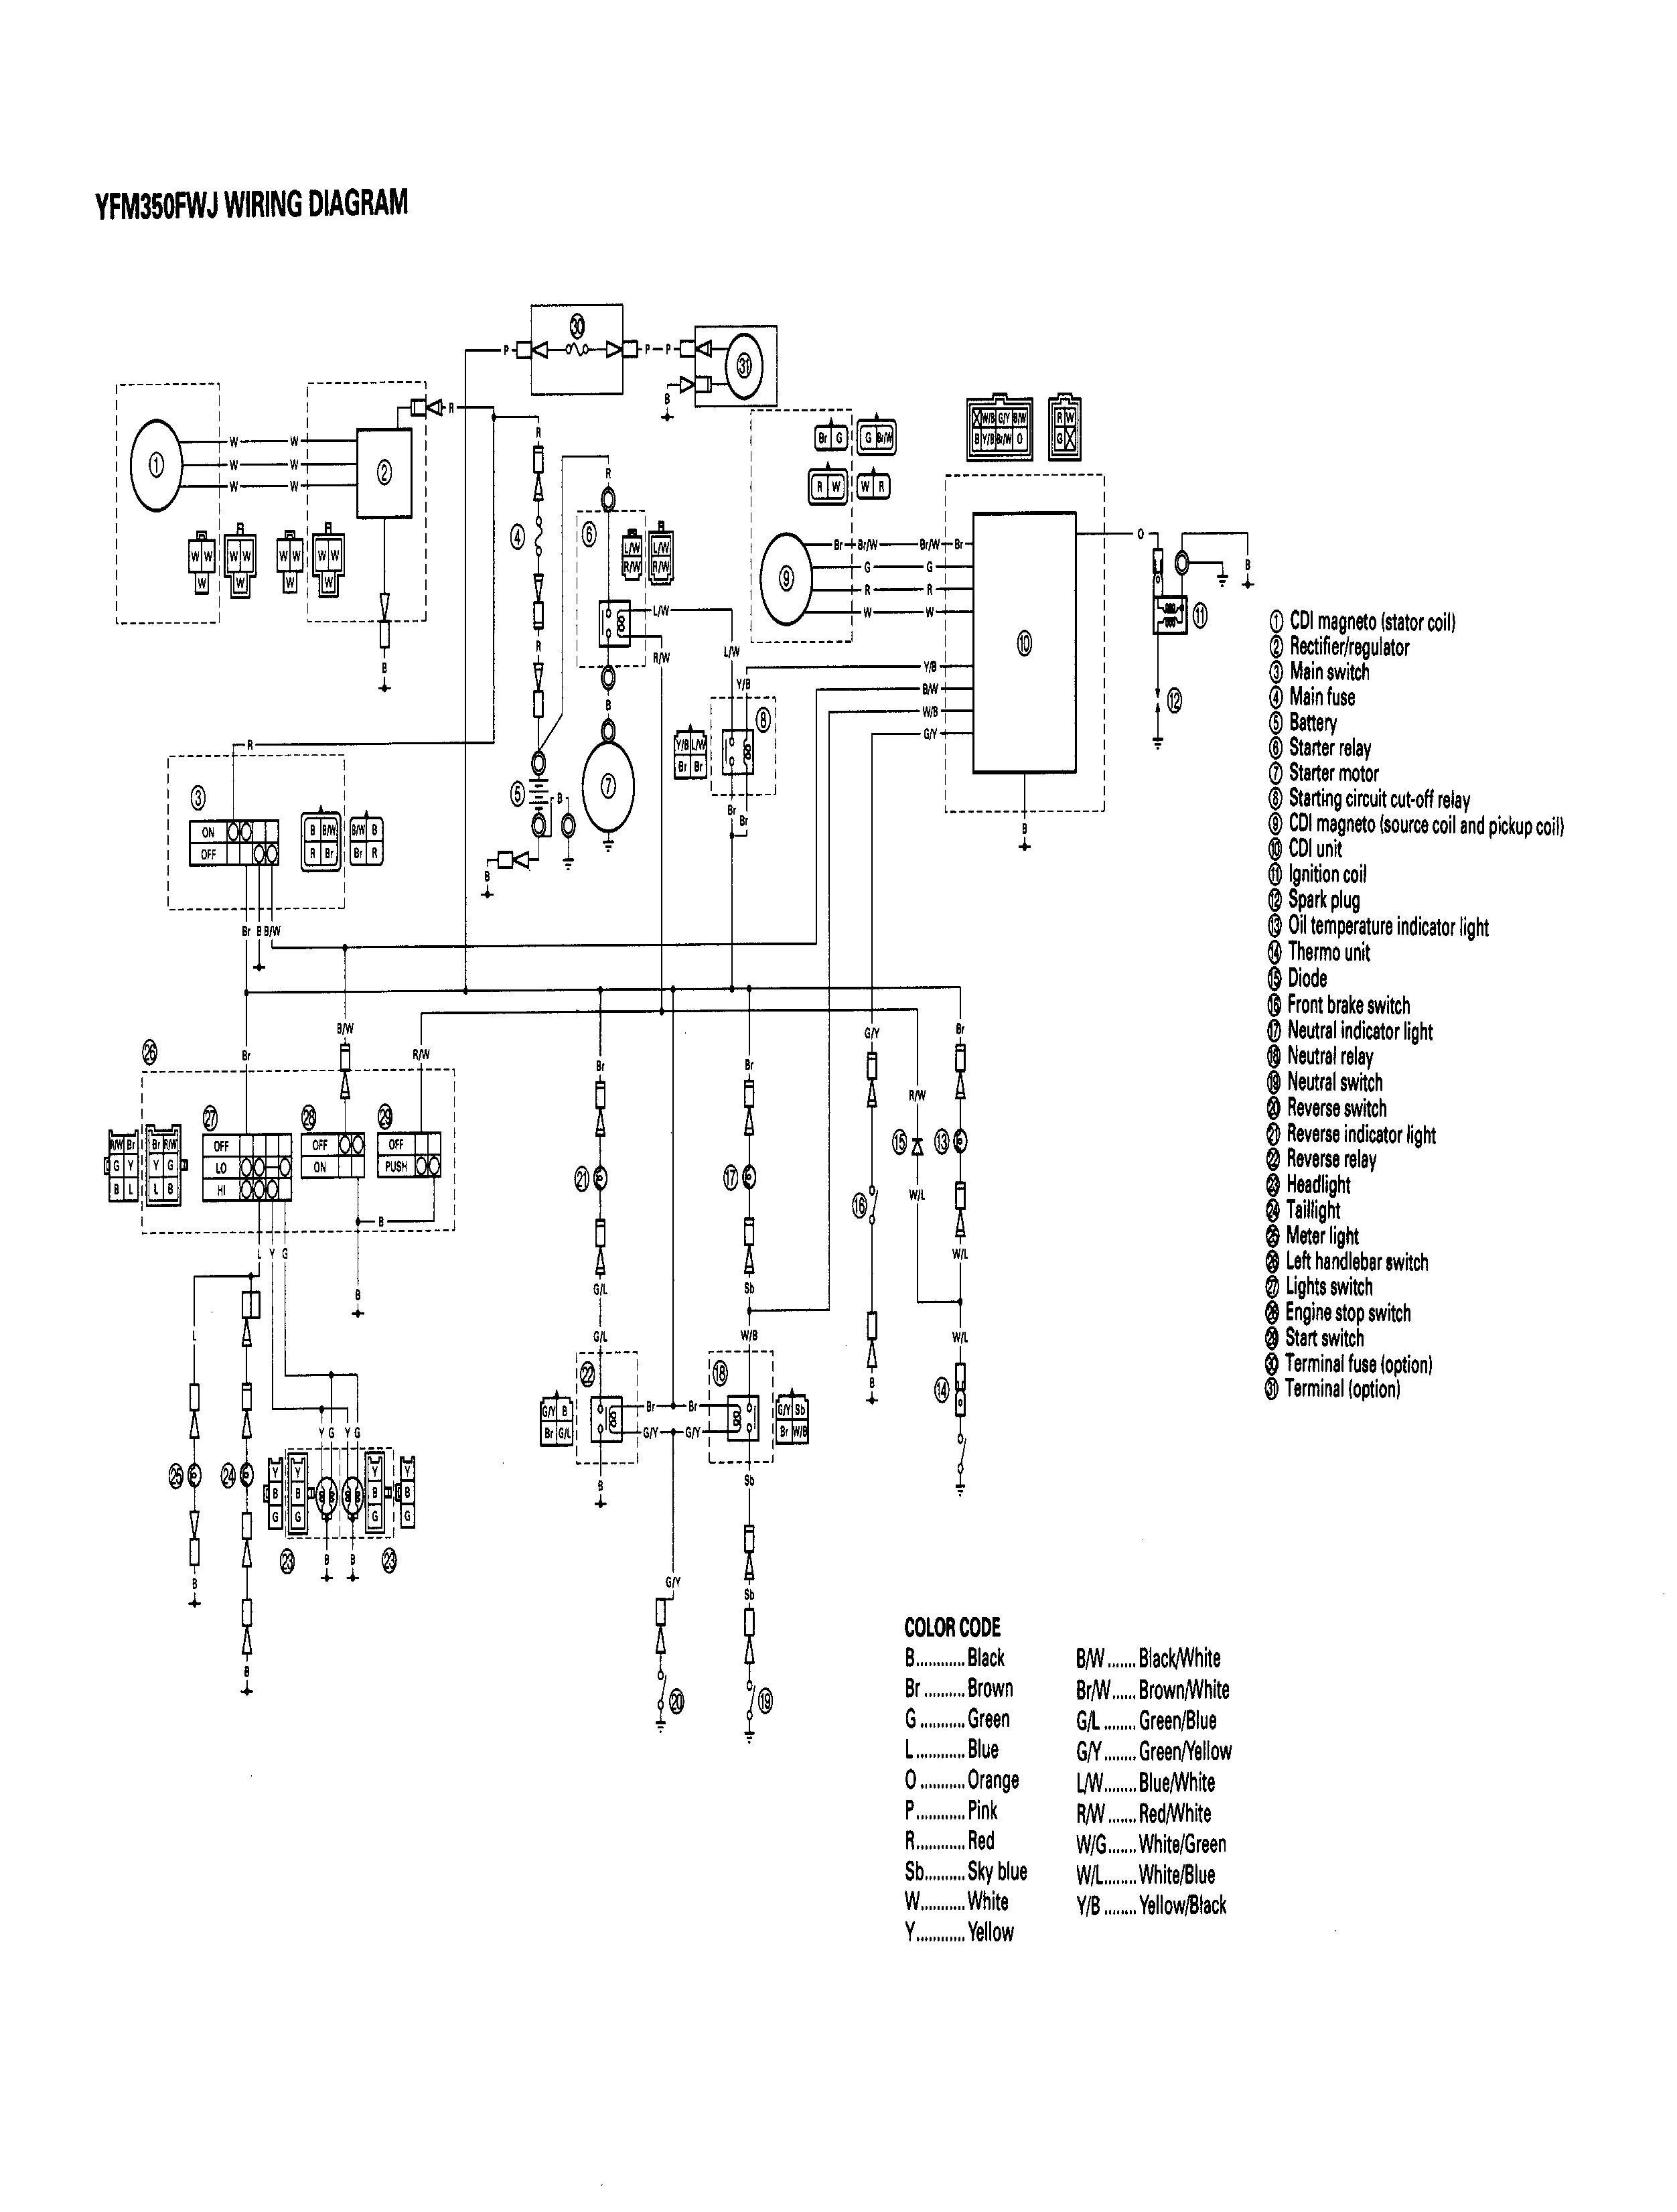 ☑ 1998 Big Bear 350 Wiring Diagram HD Quality ☑ phase-diagrams .twirlinglucca.itDiagram Database - Twirlinglucca.it